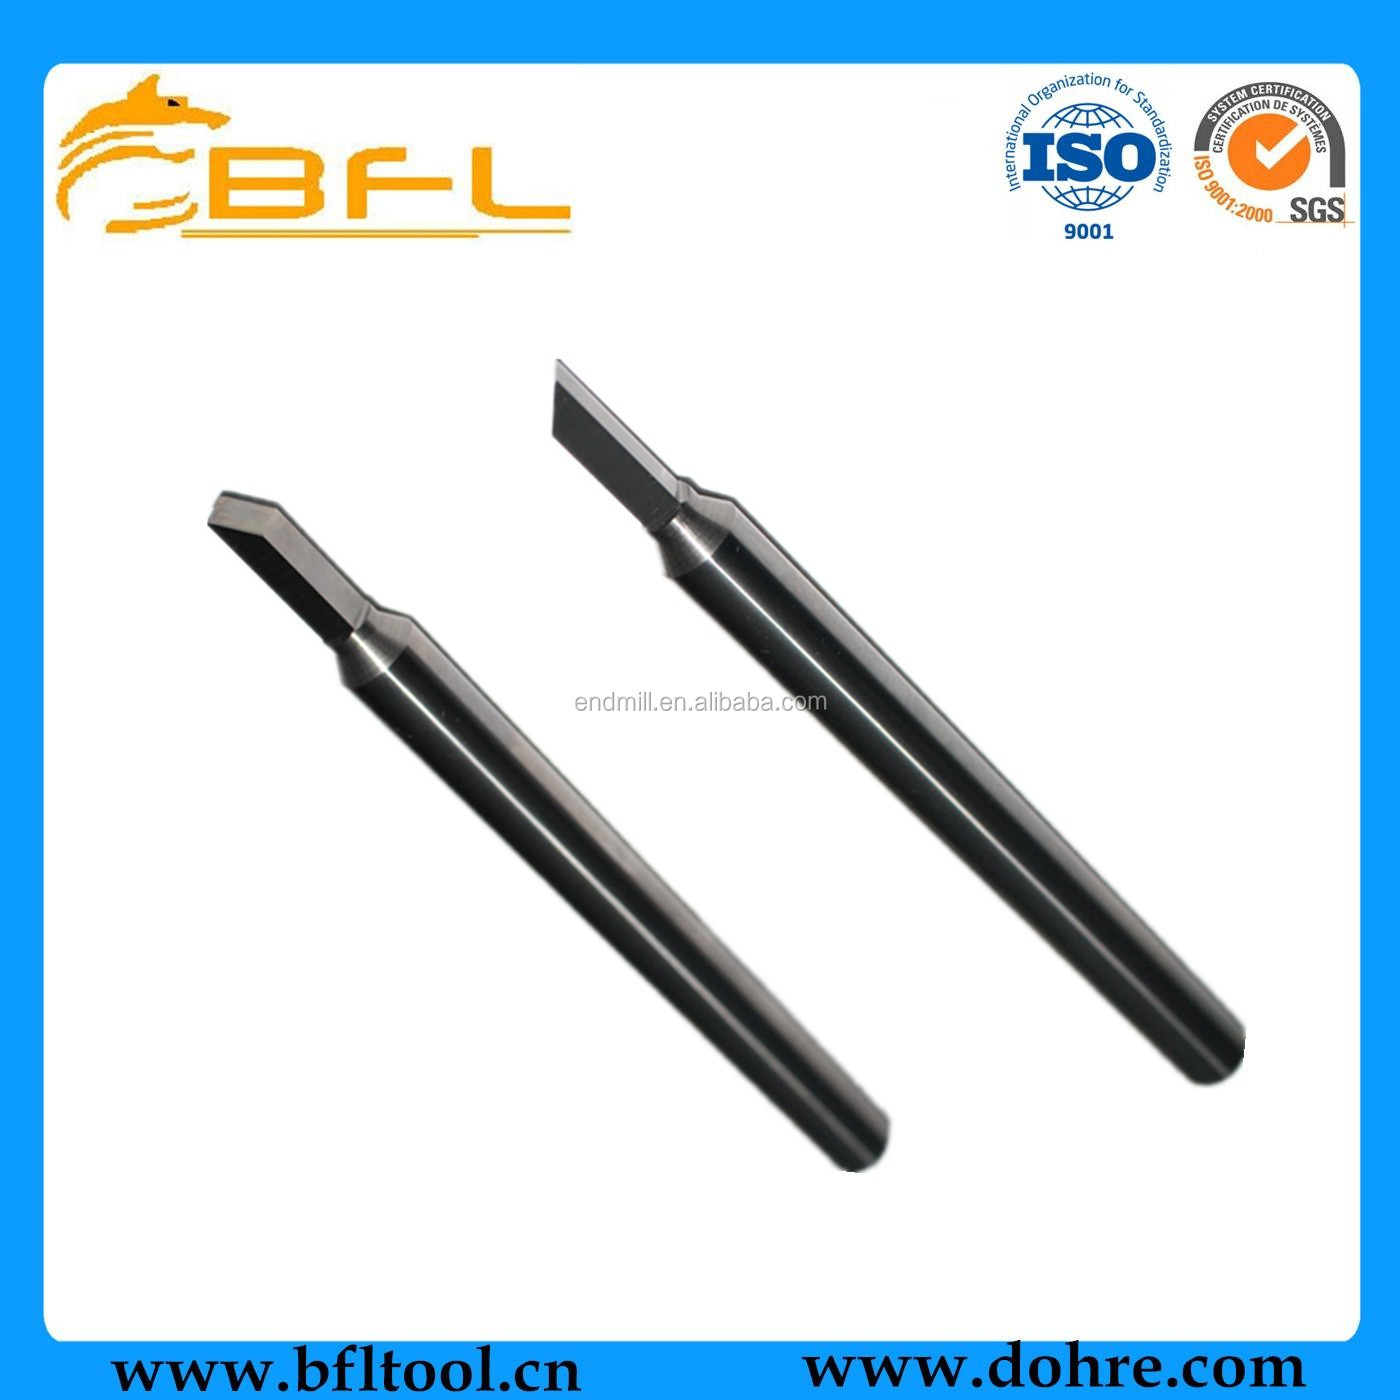 BFL-Solid carbide piercing mandrel